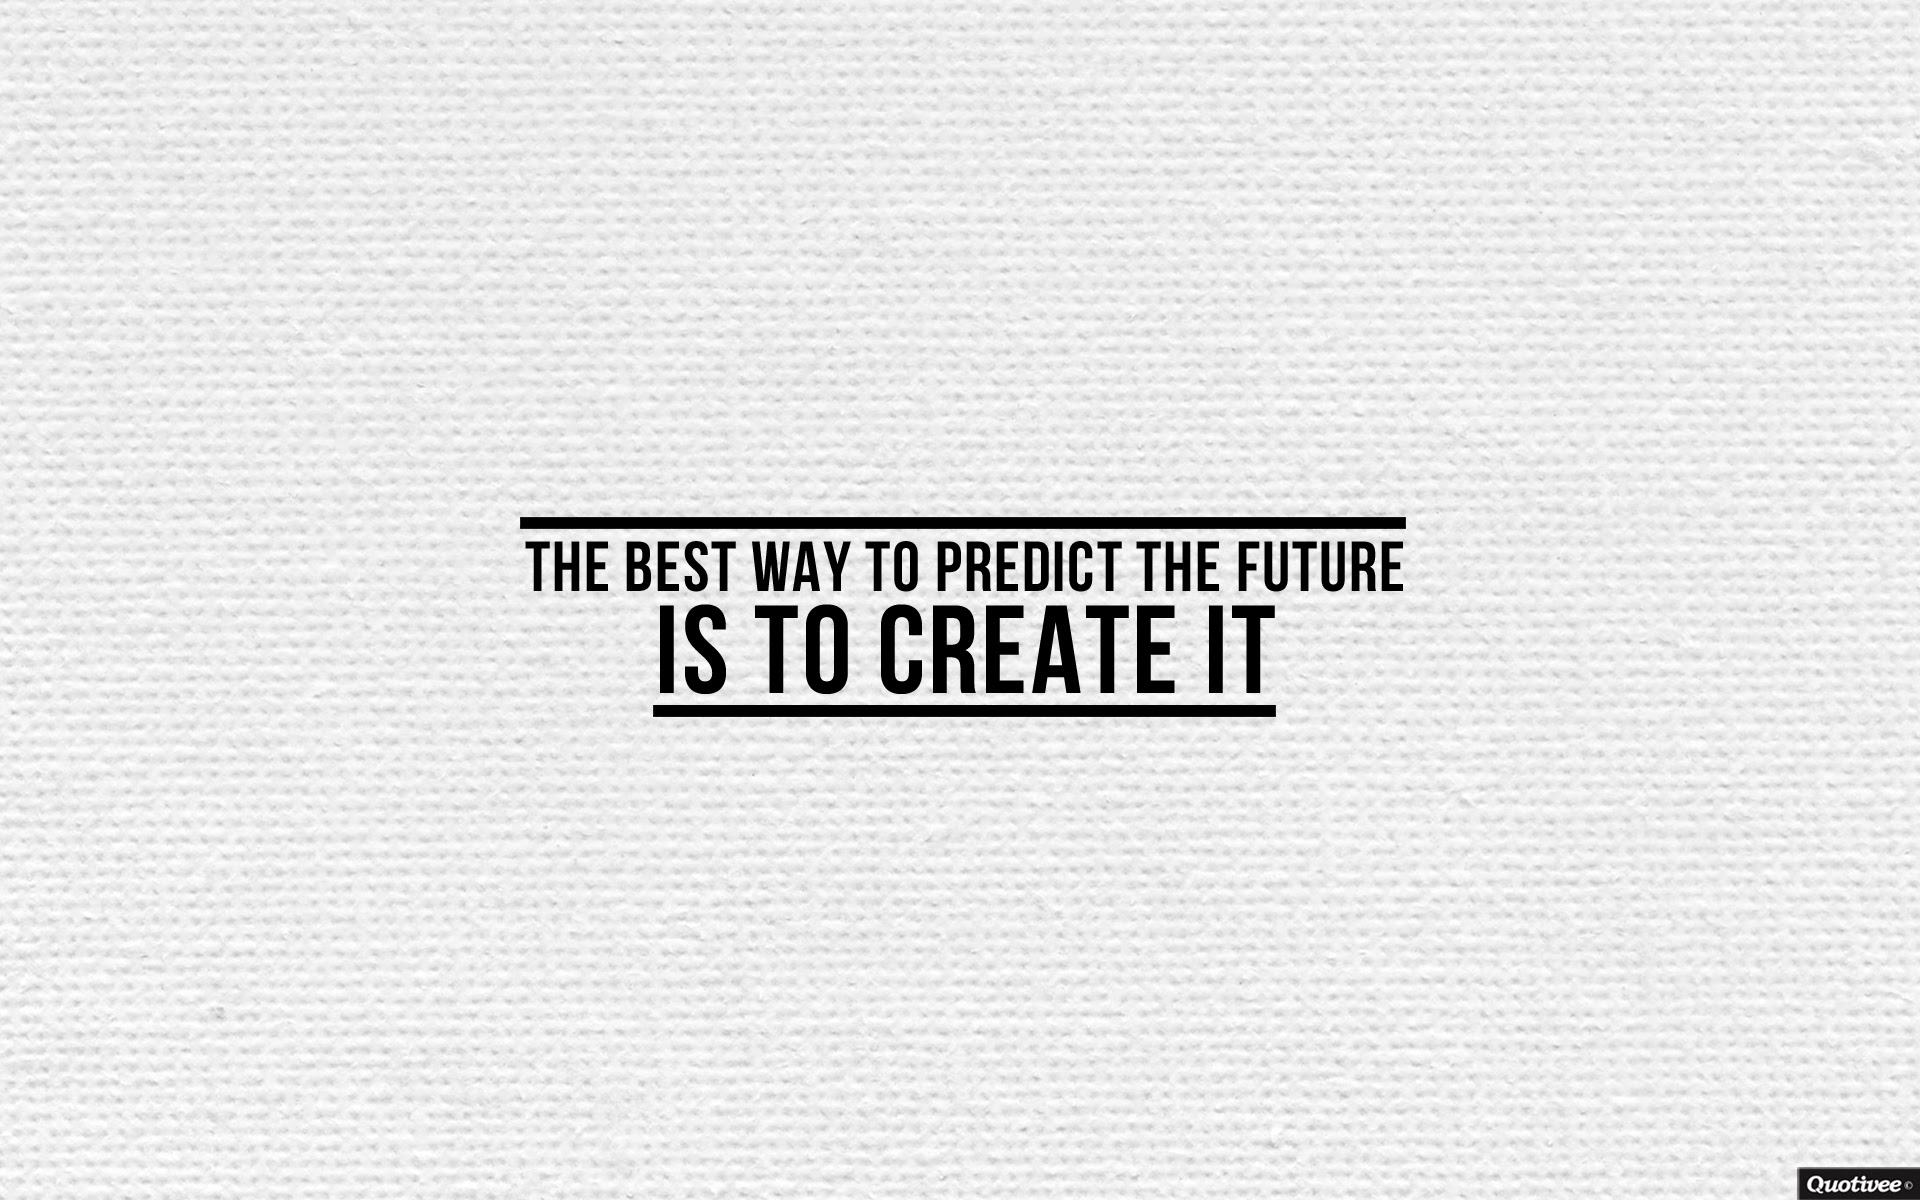 The Best Way To Predict The Future Inspirational Quotes Quotivee